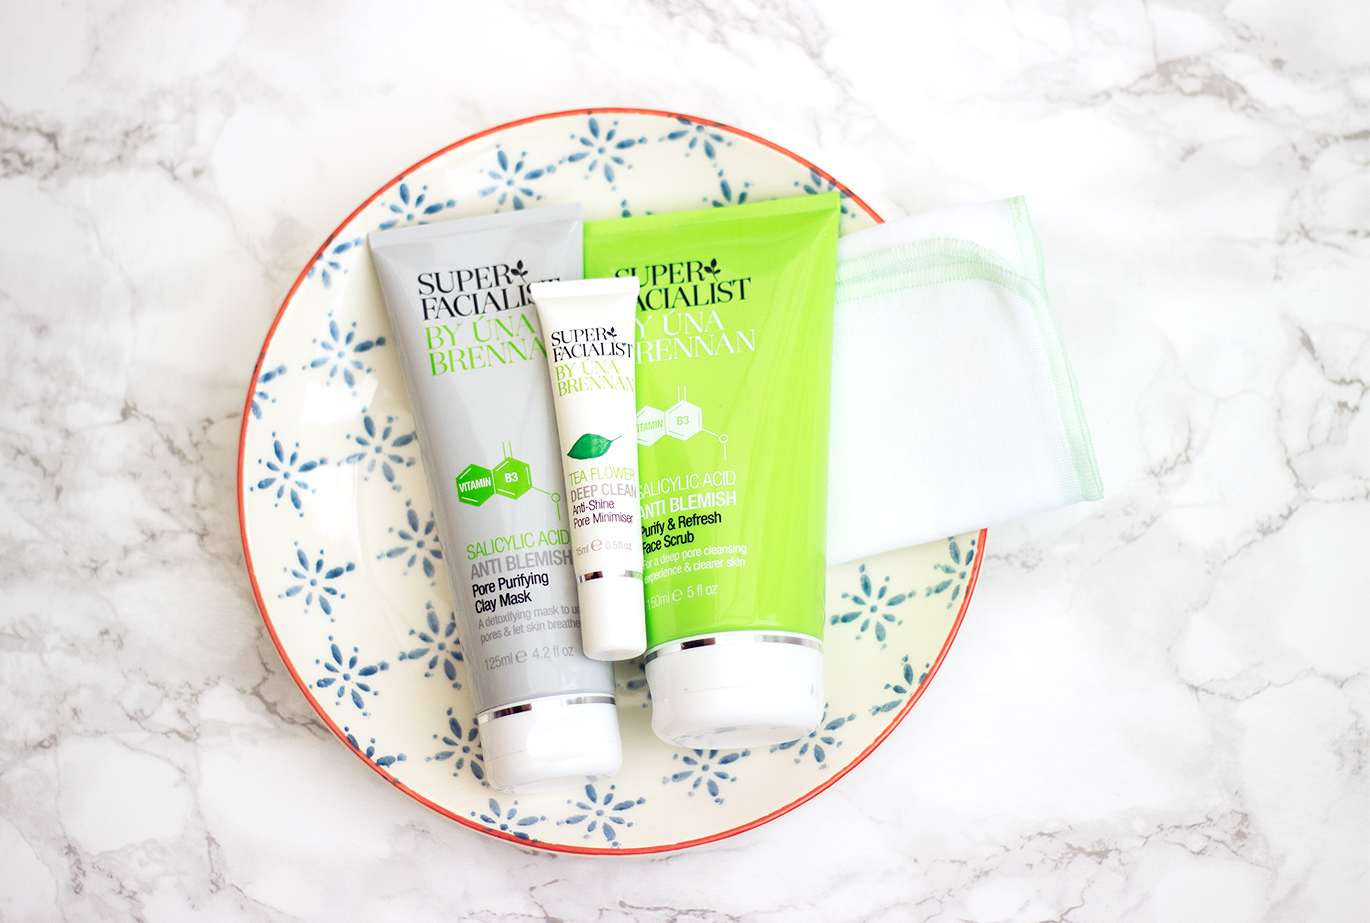 Skincare on a budget: Una Brennan Super Facialist Salicylic Acid Pore Purifying Mask, Purify & Refresh Face Scrub and Tea Flower Anti Shine Pore Minimiser